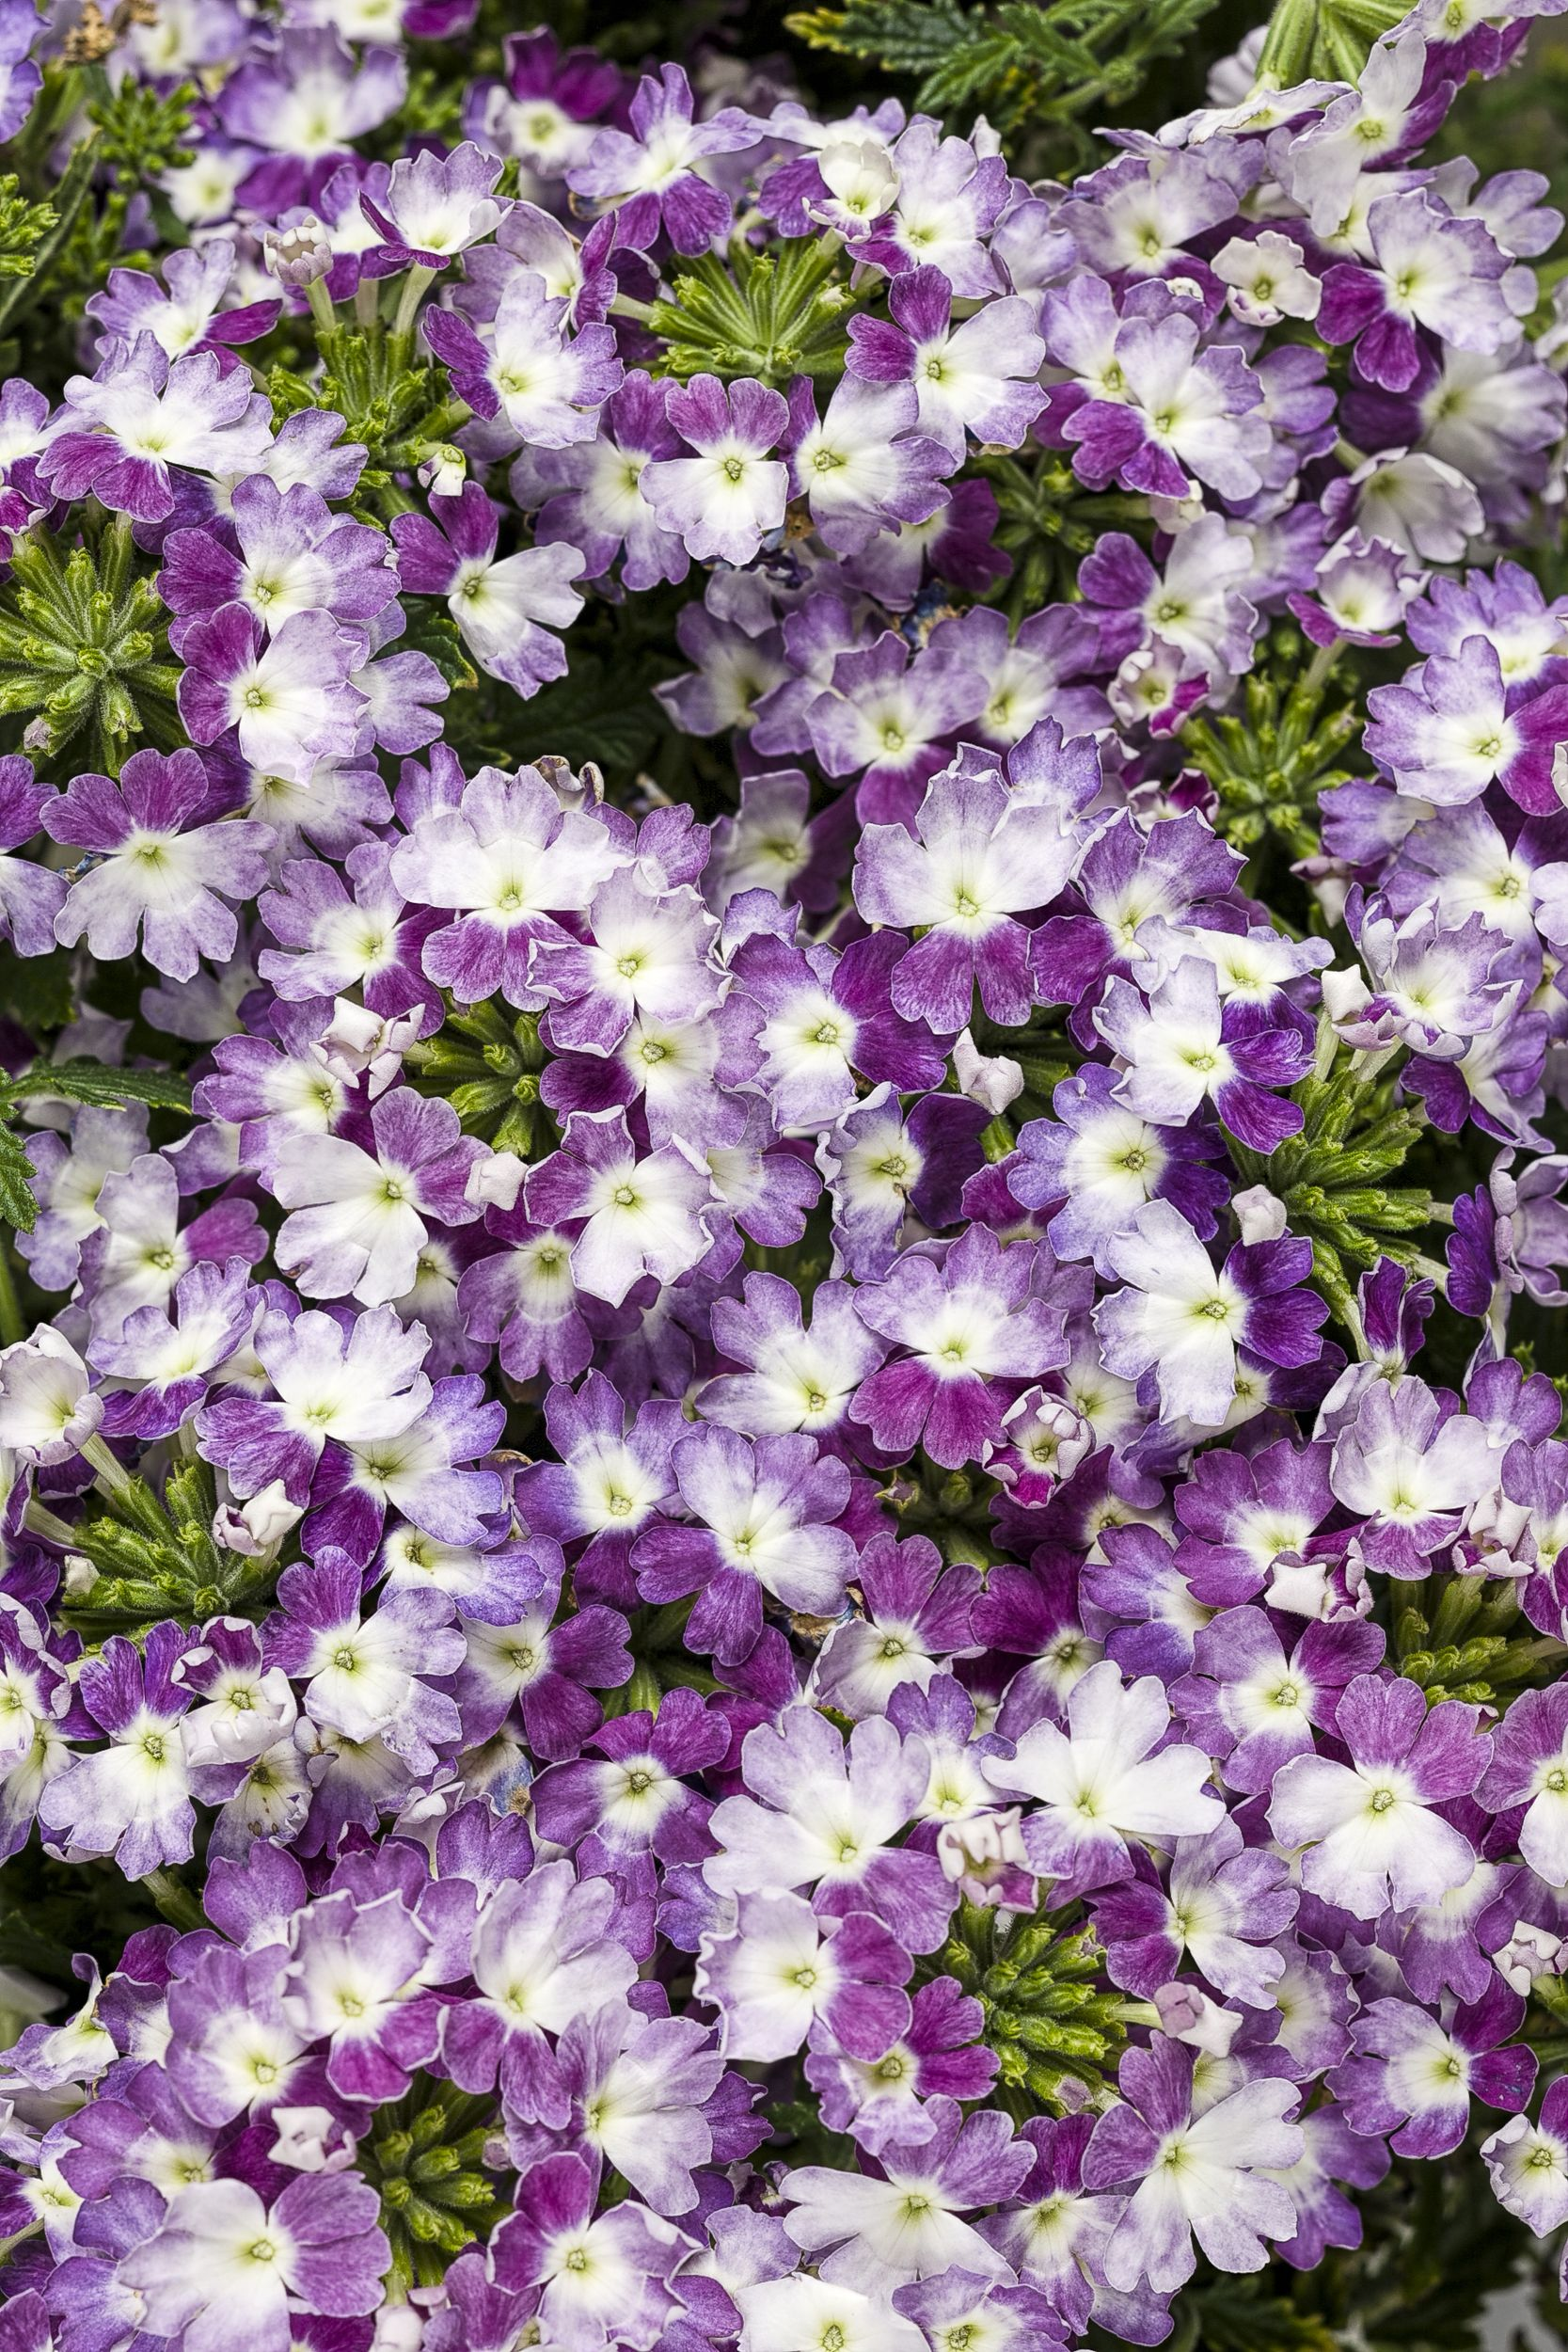 Dress up your garden with Superbena Sparkling Amethyst. NEW this spring, these novel ci-color blooms will impress all summer long, in your landscape or containers. Put this one on your must-have list!